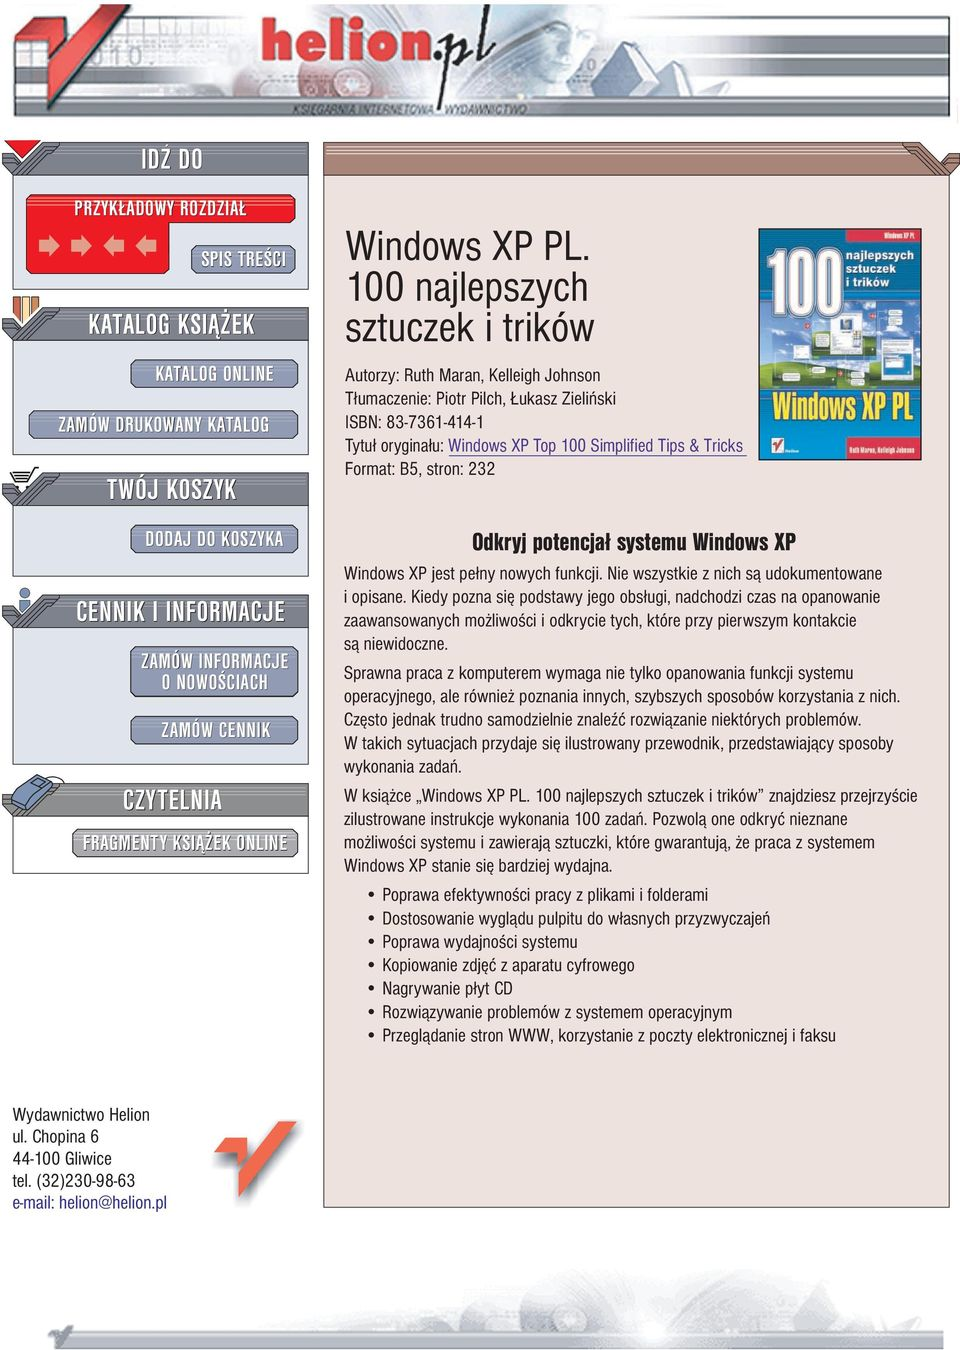 100 najlepszych sztuczek i trików Autorzy: Ruth Maran, Kelleigh Johnson T³umaczenie: Piotr Pilch, ukasz Zieliñski ISBN: 83-7361-1-1 Tytu³ orygina³u: Windows XP Top 100 Simplified Tips & Tricks